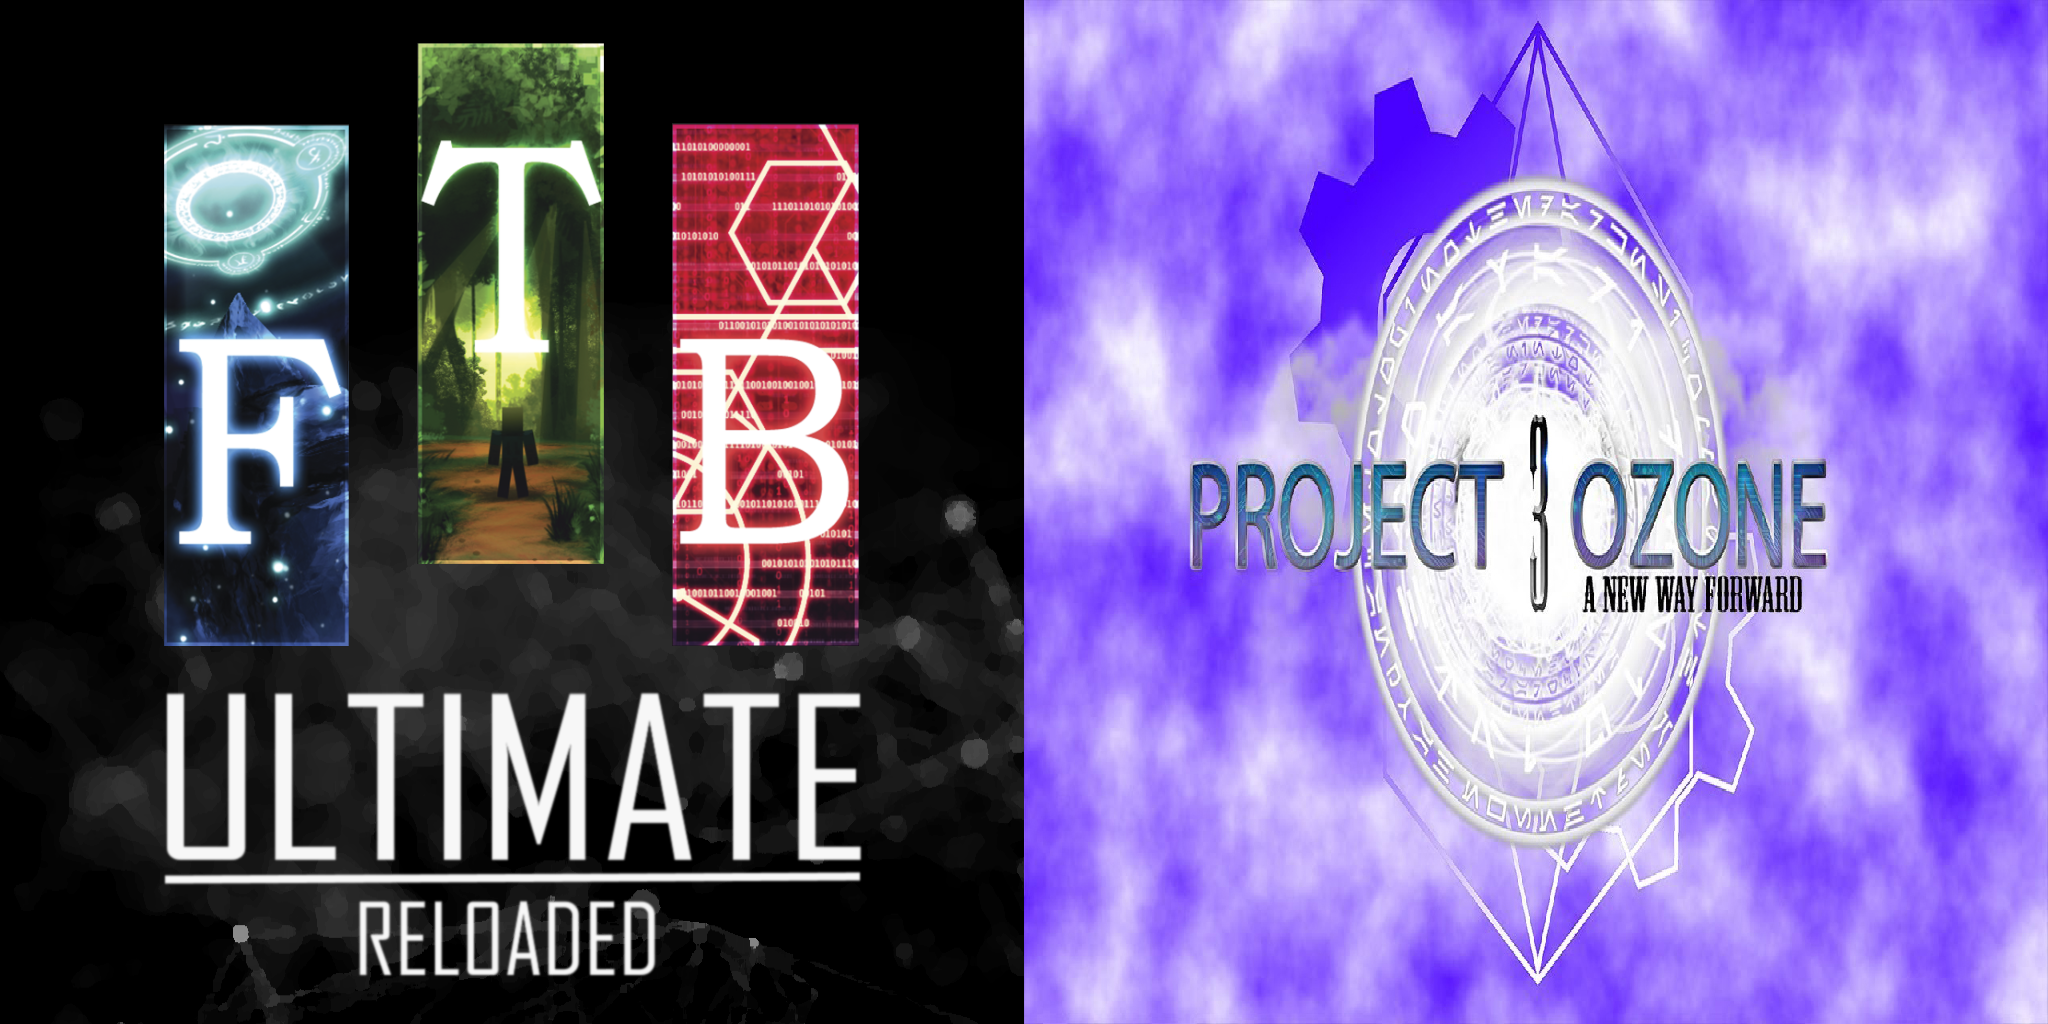 FTB Ultimate Reloaded and Project Ozone 3 Now Available!